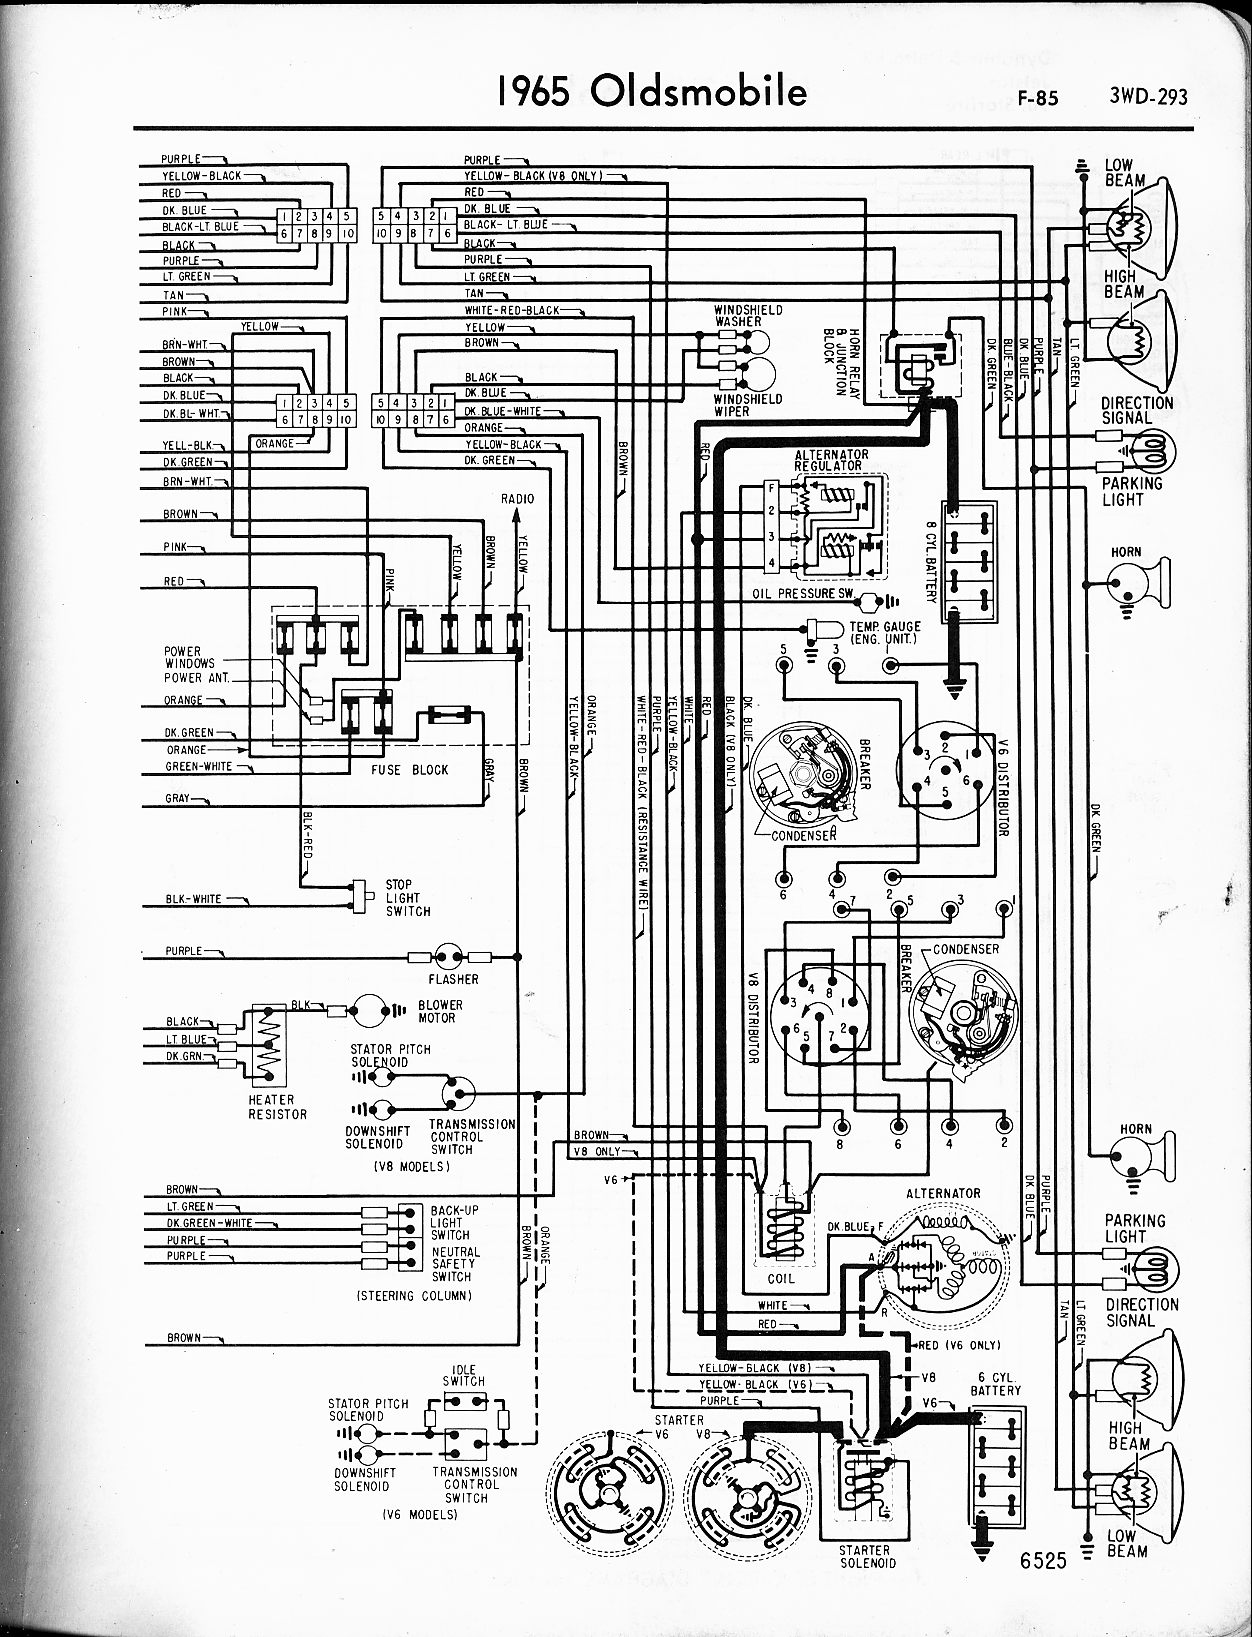 Fan Motor Wiring Diagram For 1999 Olds 88 Schematics Data 98 Malibu Oldsmobile Diagrams The Old Car Manual Project Rh Oldcarmanualproject Com Lincoln